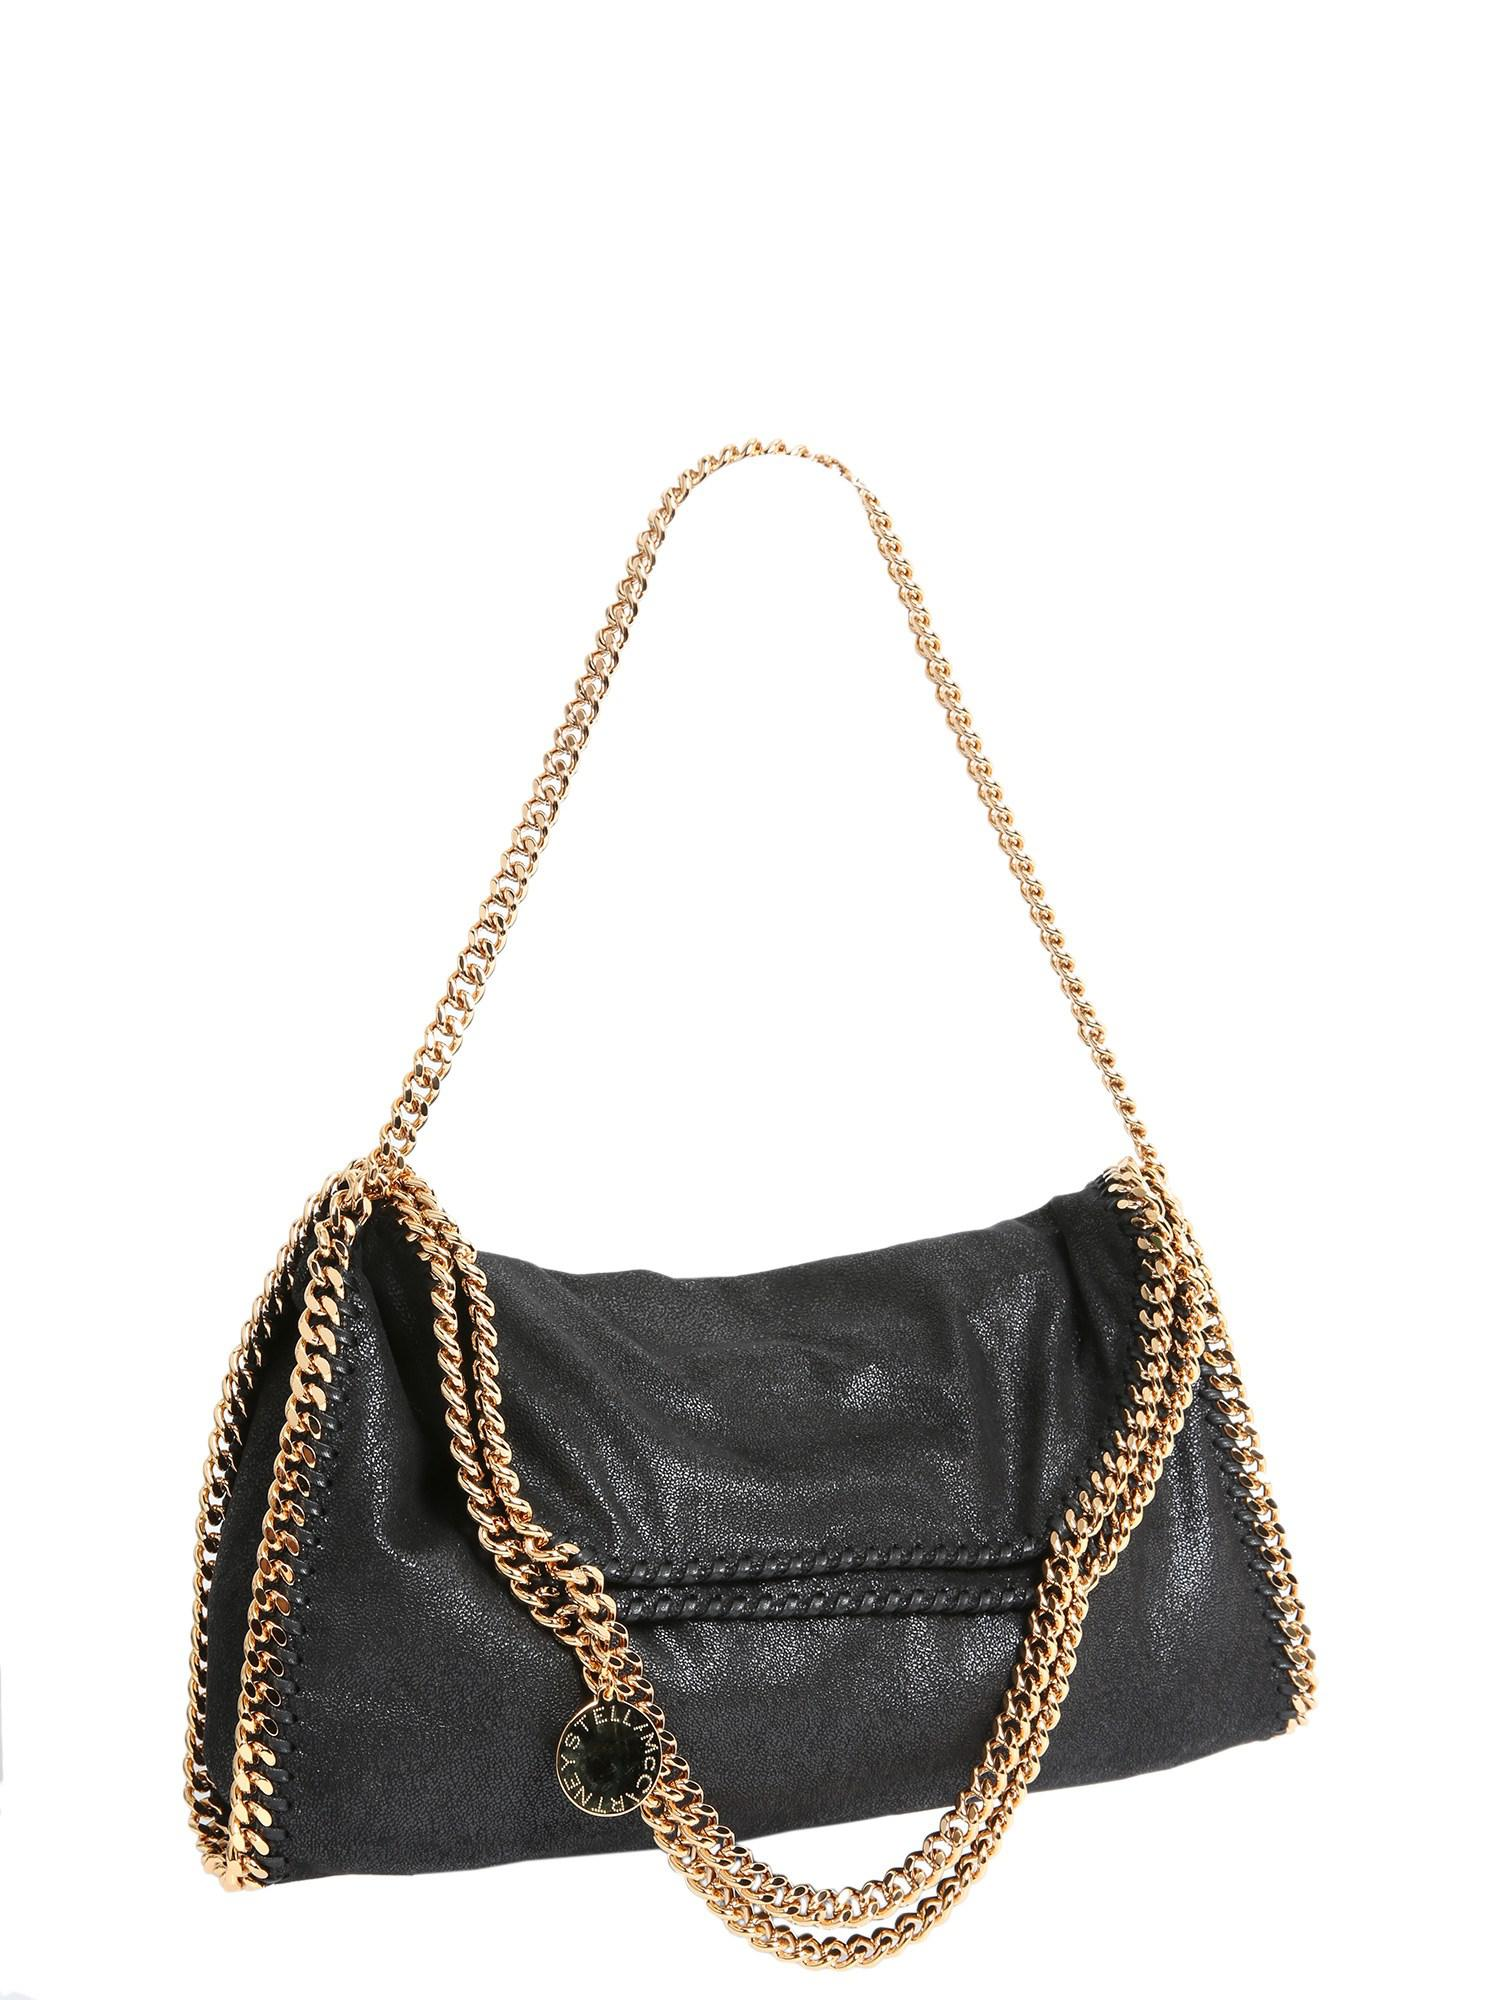 017812d12bf Stella McCartney - Black Falabella SHAGGY Deer Fold Over Tote - Lyst. View  fullscreen